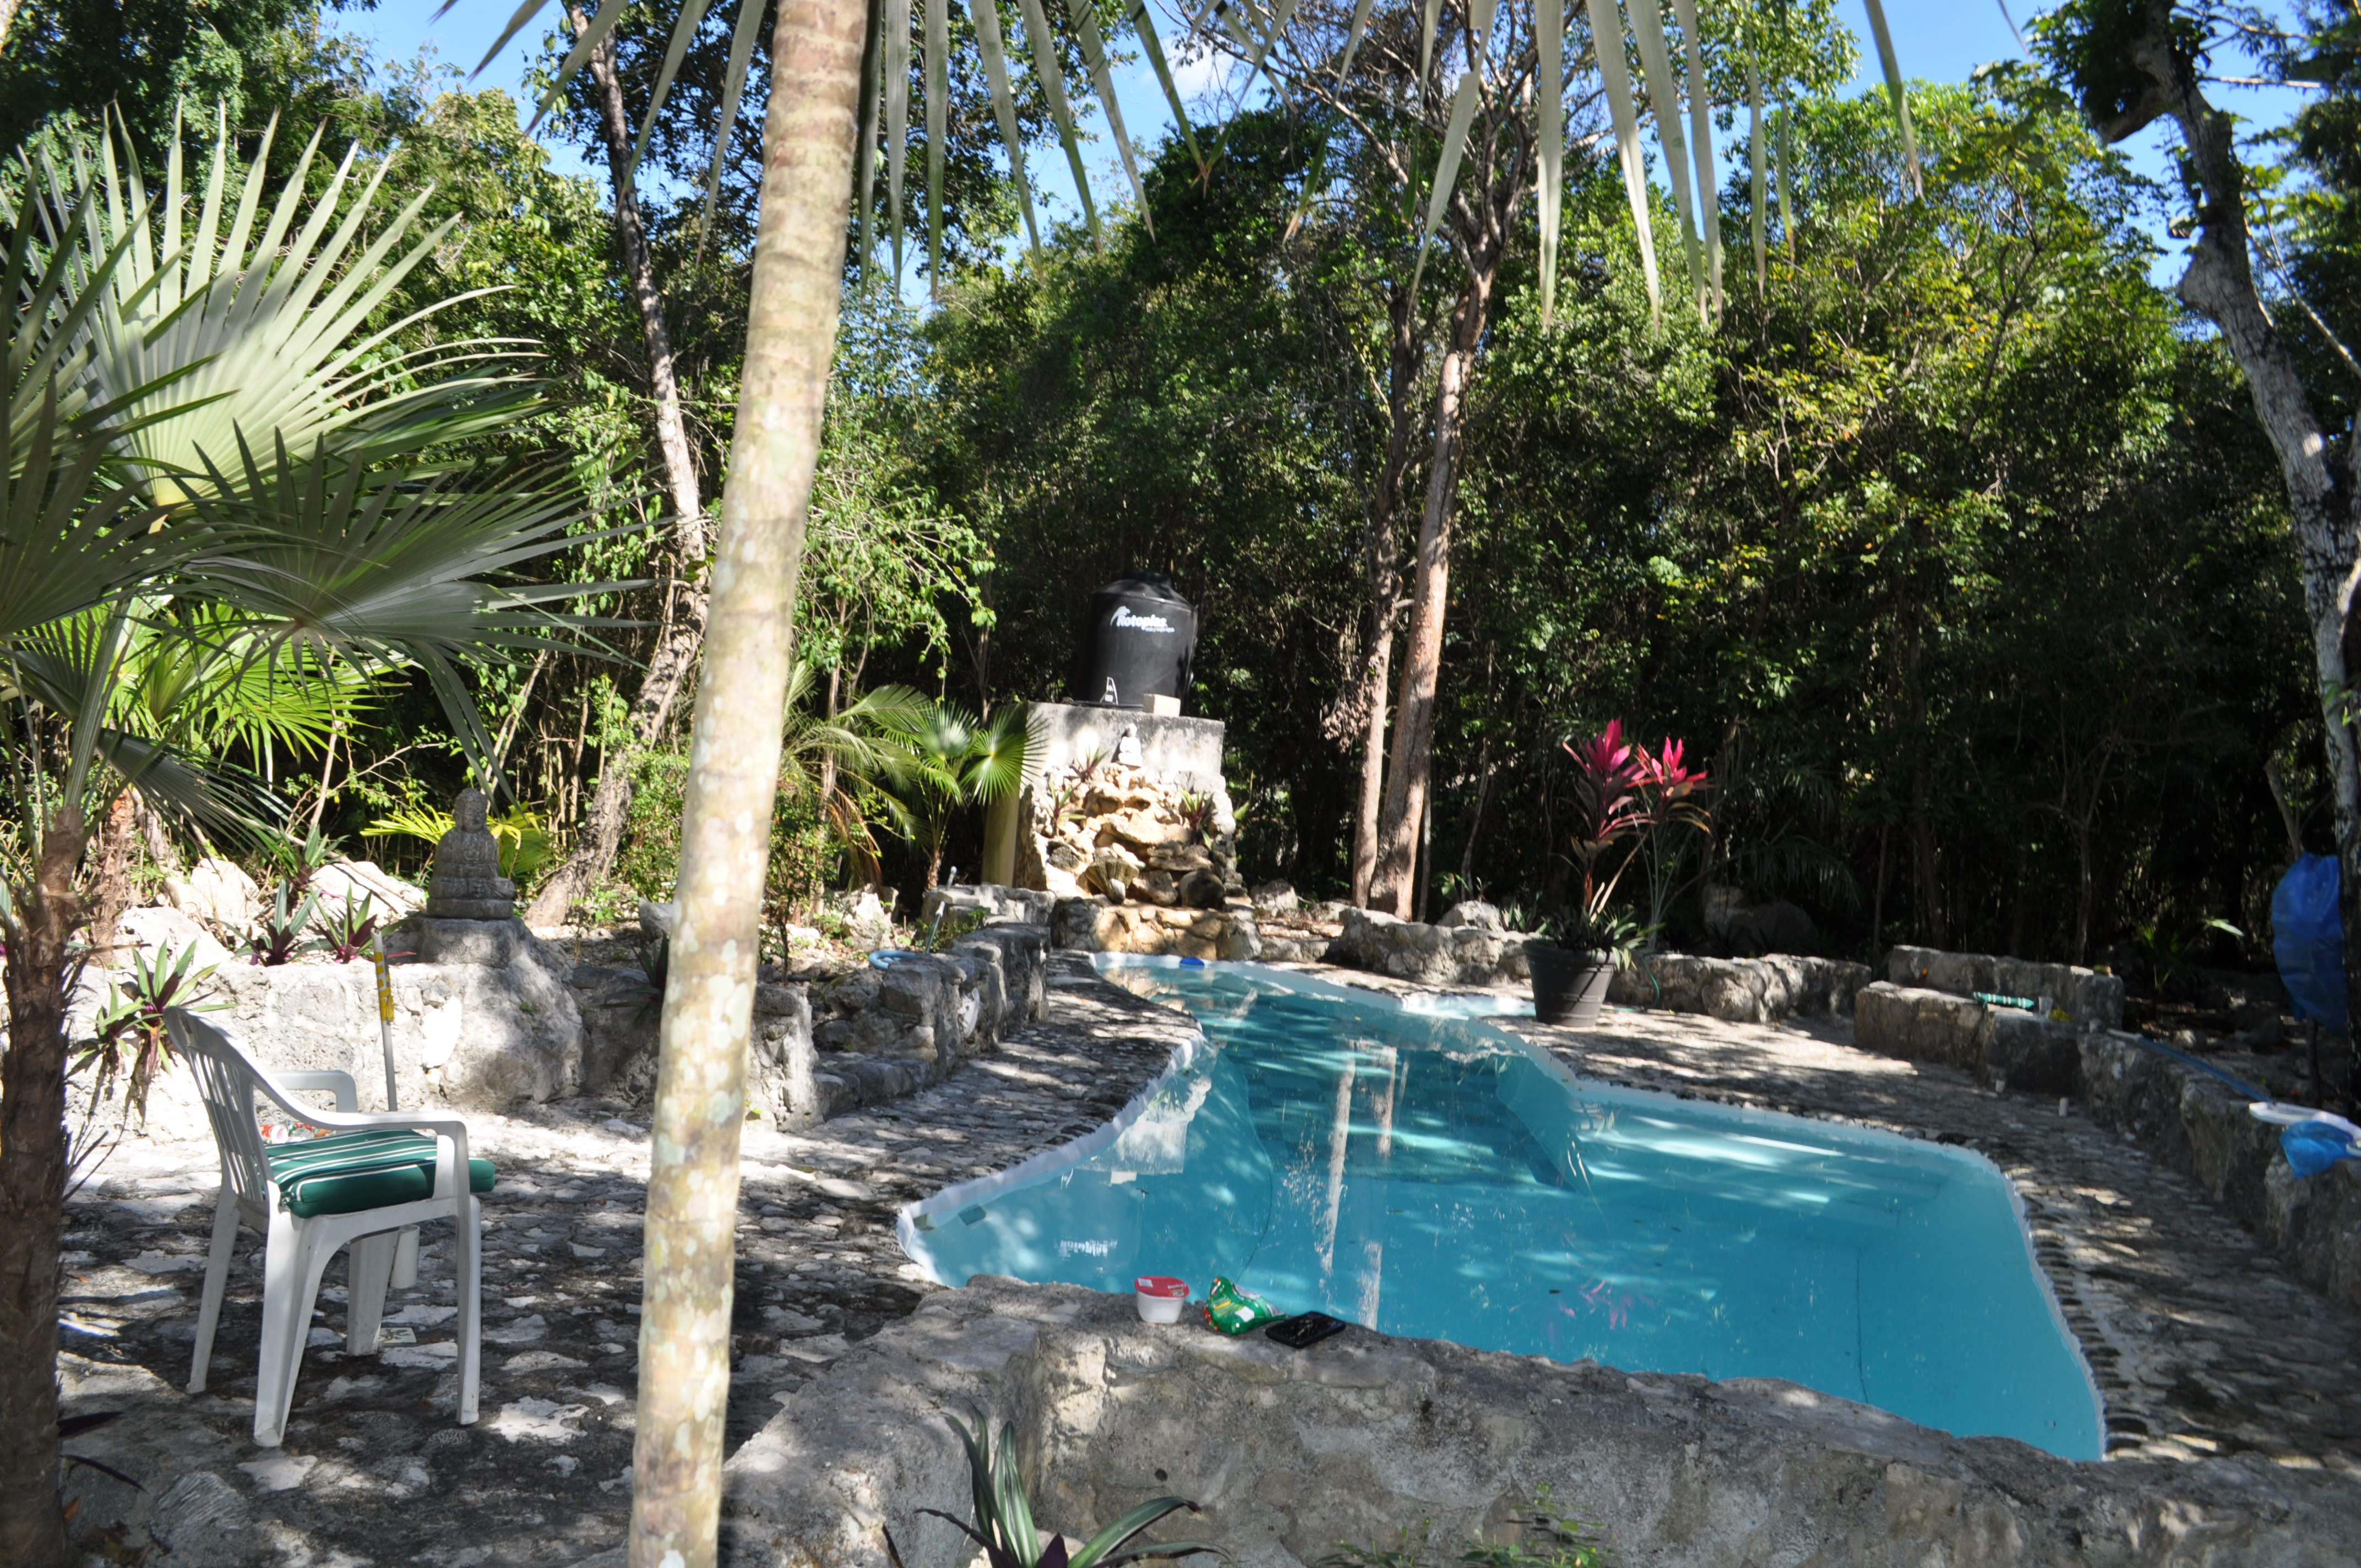 1 hectare ranch near Tulum, surrounded lush Mayan jungle property for sale